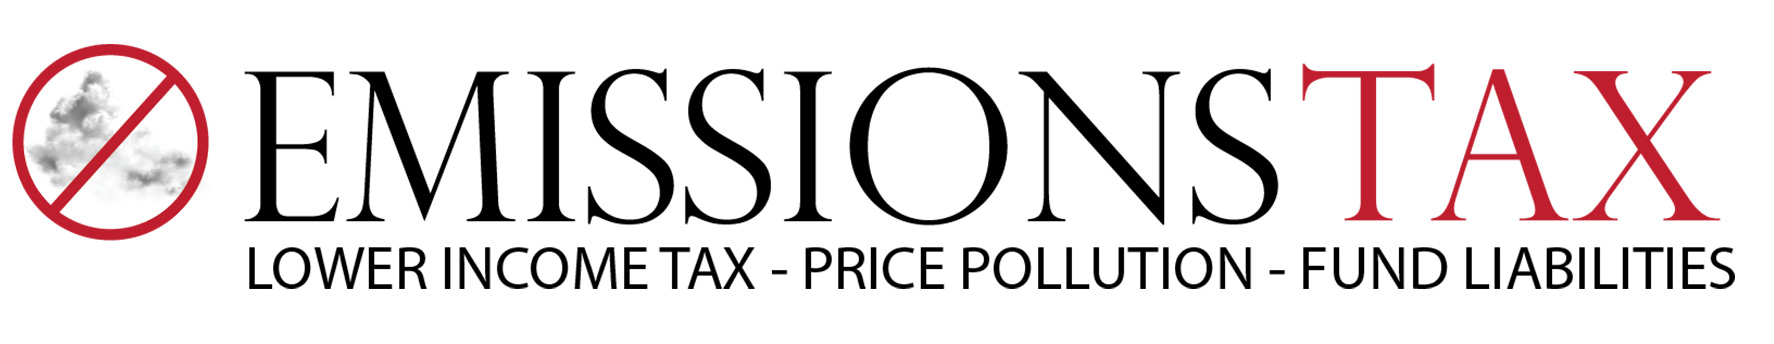 EmissionsTax – Environmental Policy and Emissions Taxes